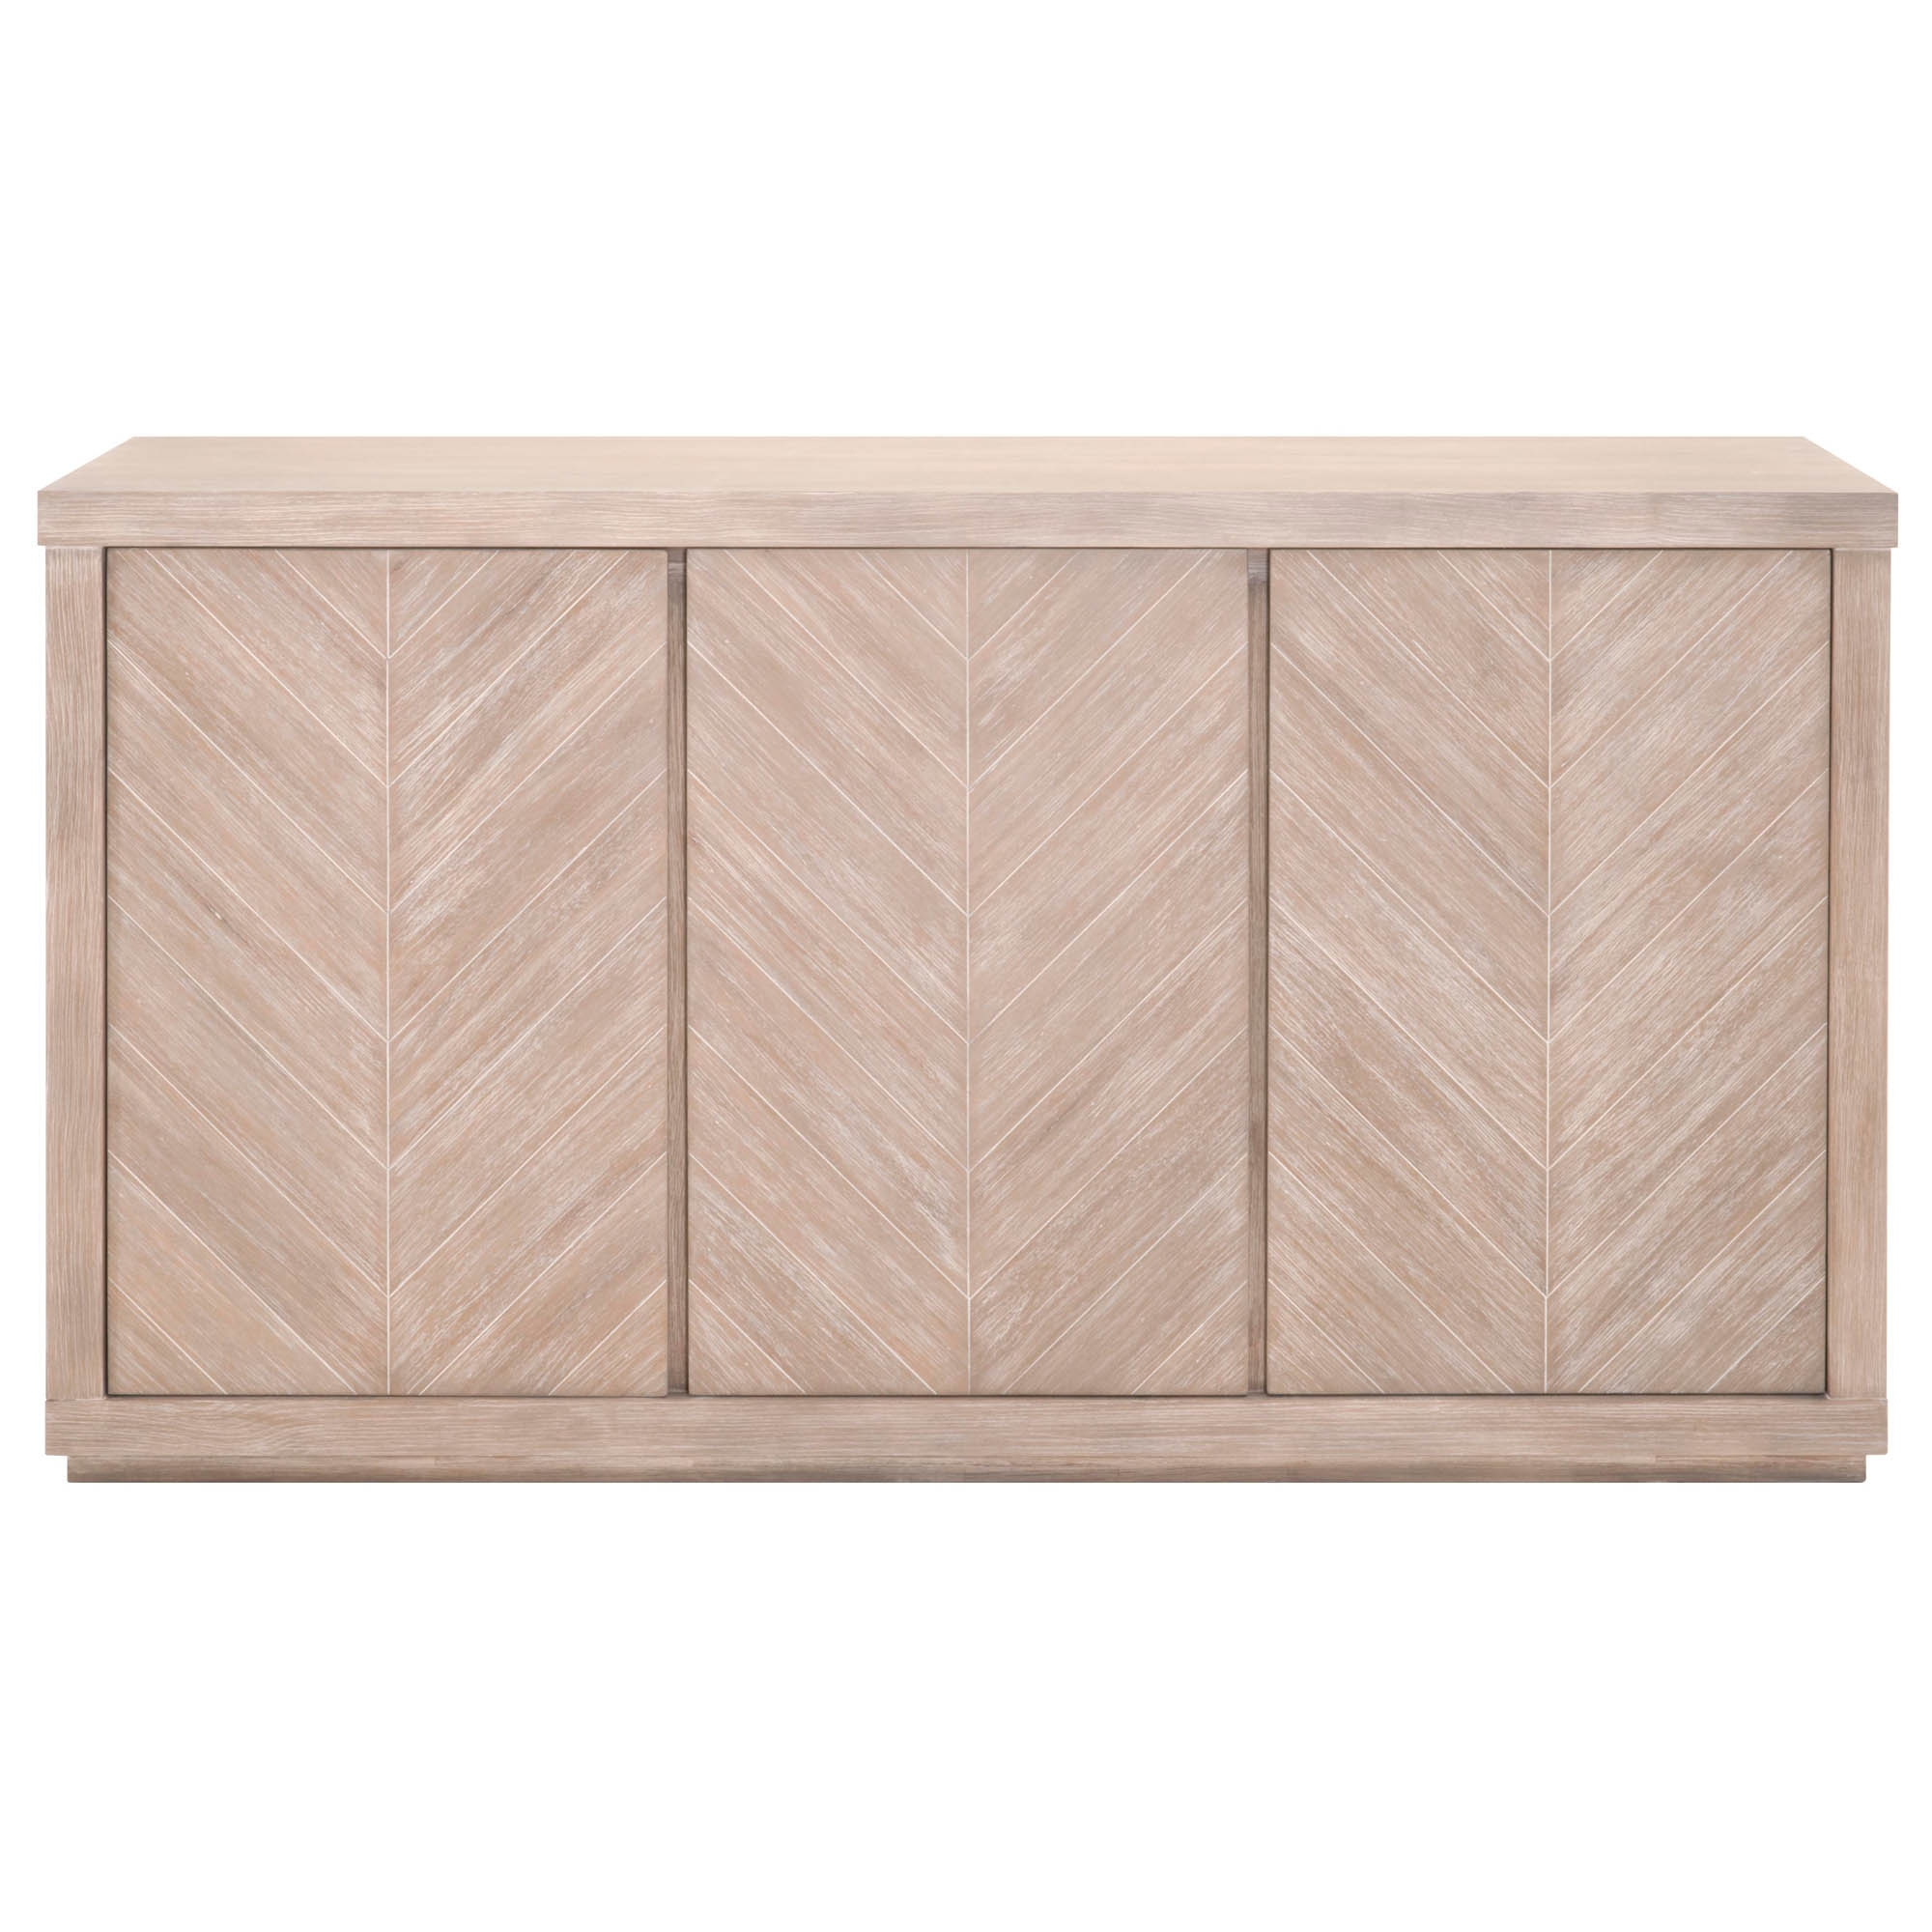 Candelabra Home Adler Media Sideboard | Products In 2019 For Upper Stanton Sideboards (View 3 of 30)